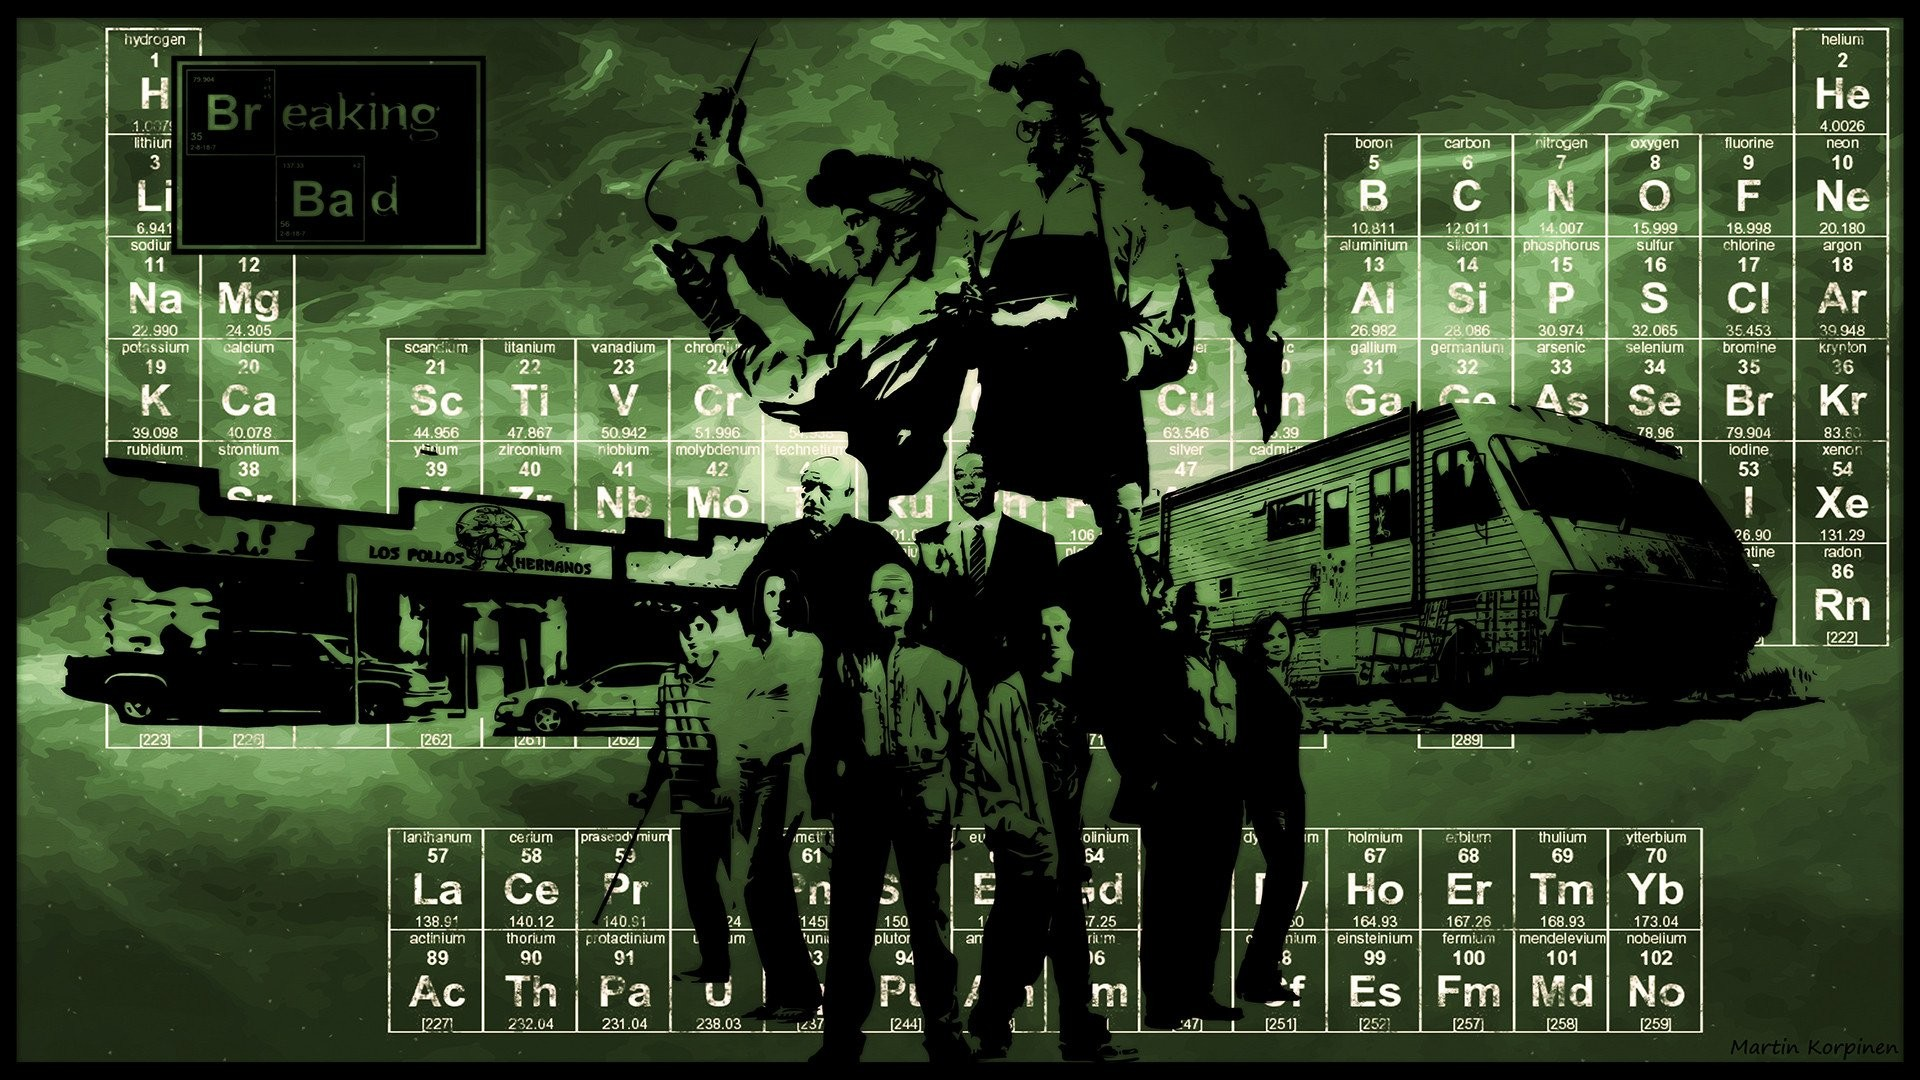 Periodic table wallpaper download free beautiful full hd 1920x1080 periodic table wallpaper breaking bad download desktop wallpapers urtaz Gallery